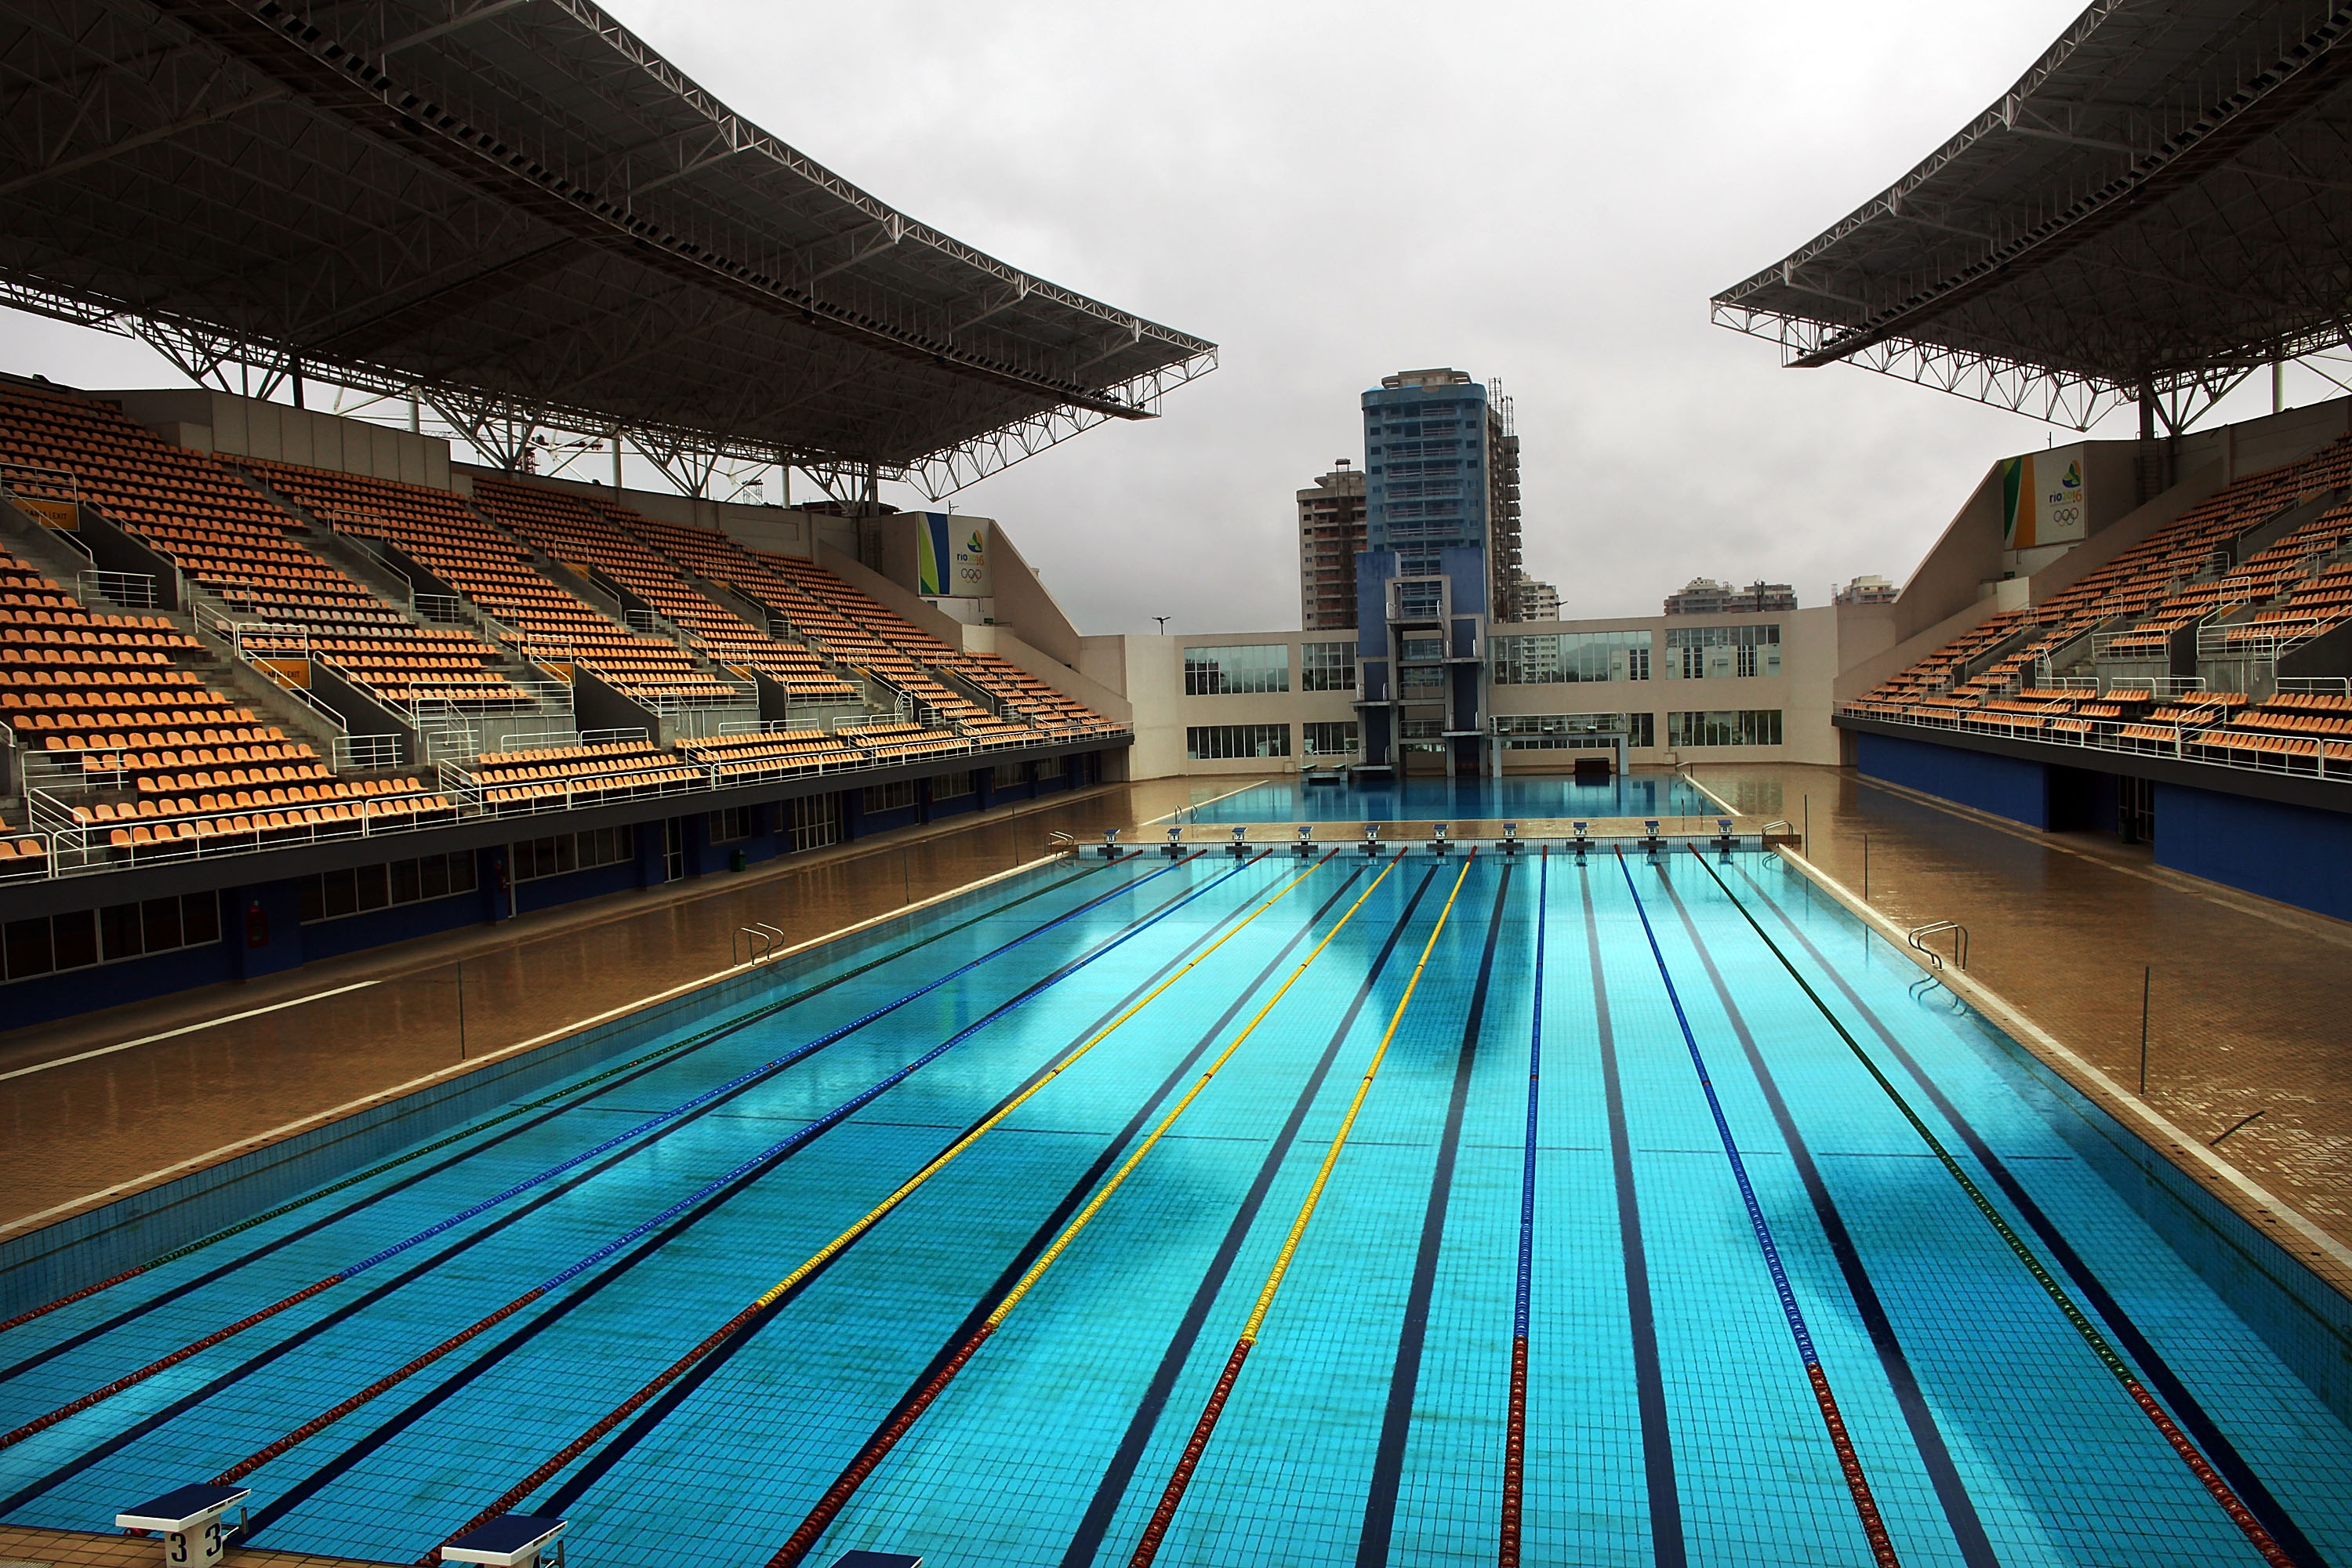 theres a massive conspiracy theory about the rio olympic pool gettyimages 94265820 - Olympic Swimming Pool 2016